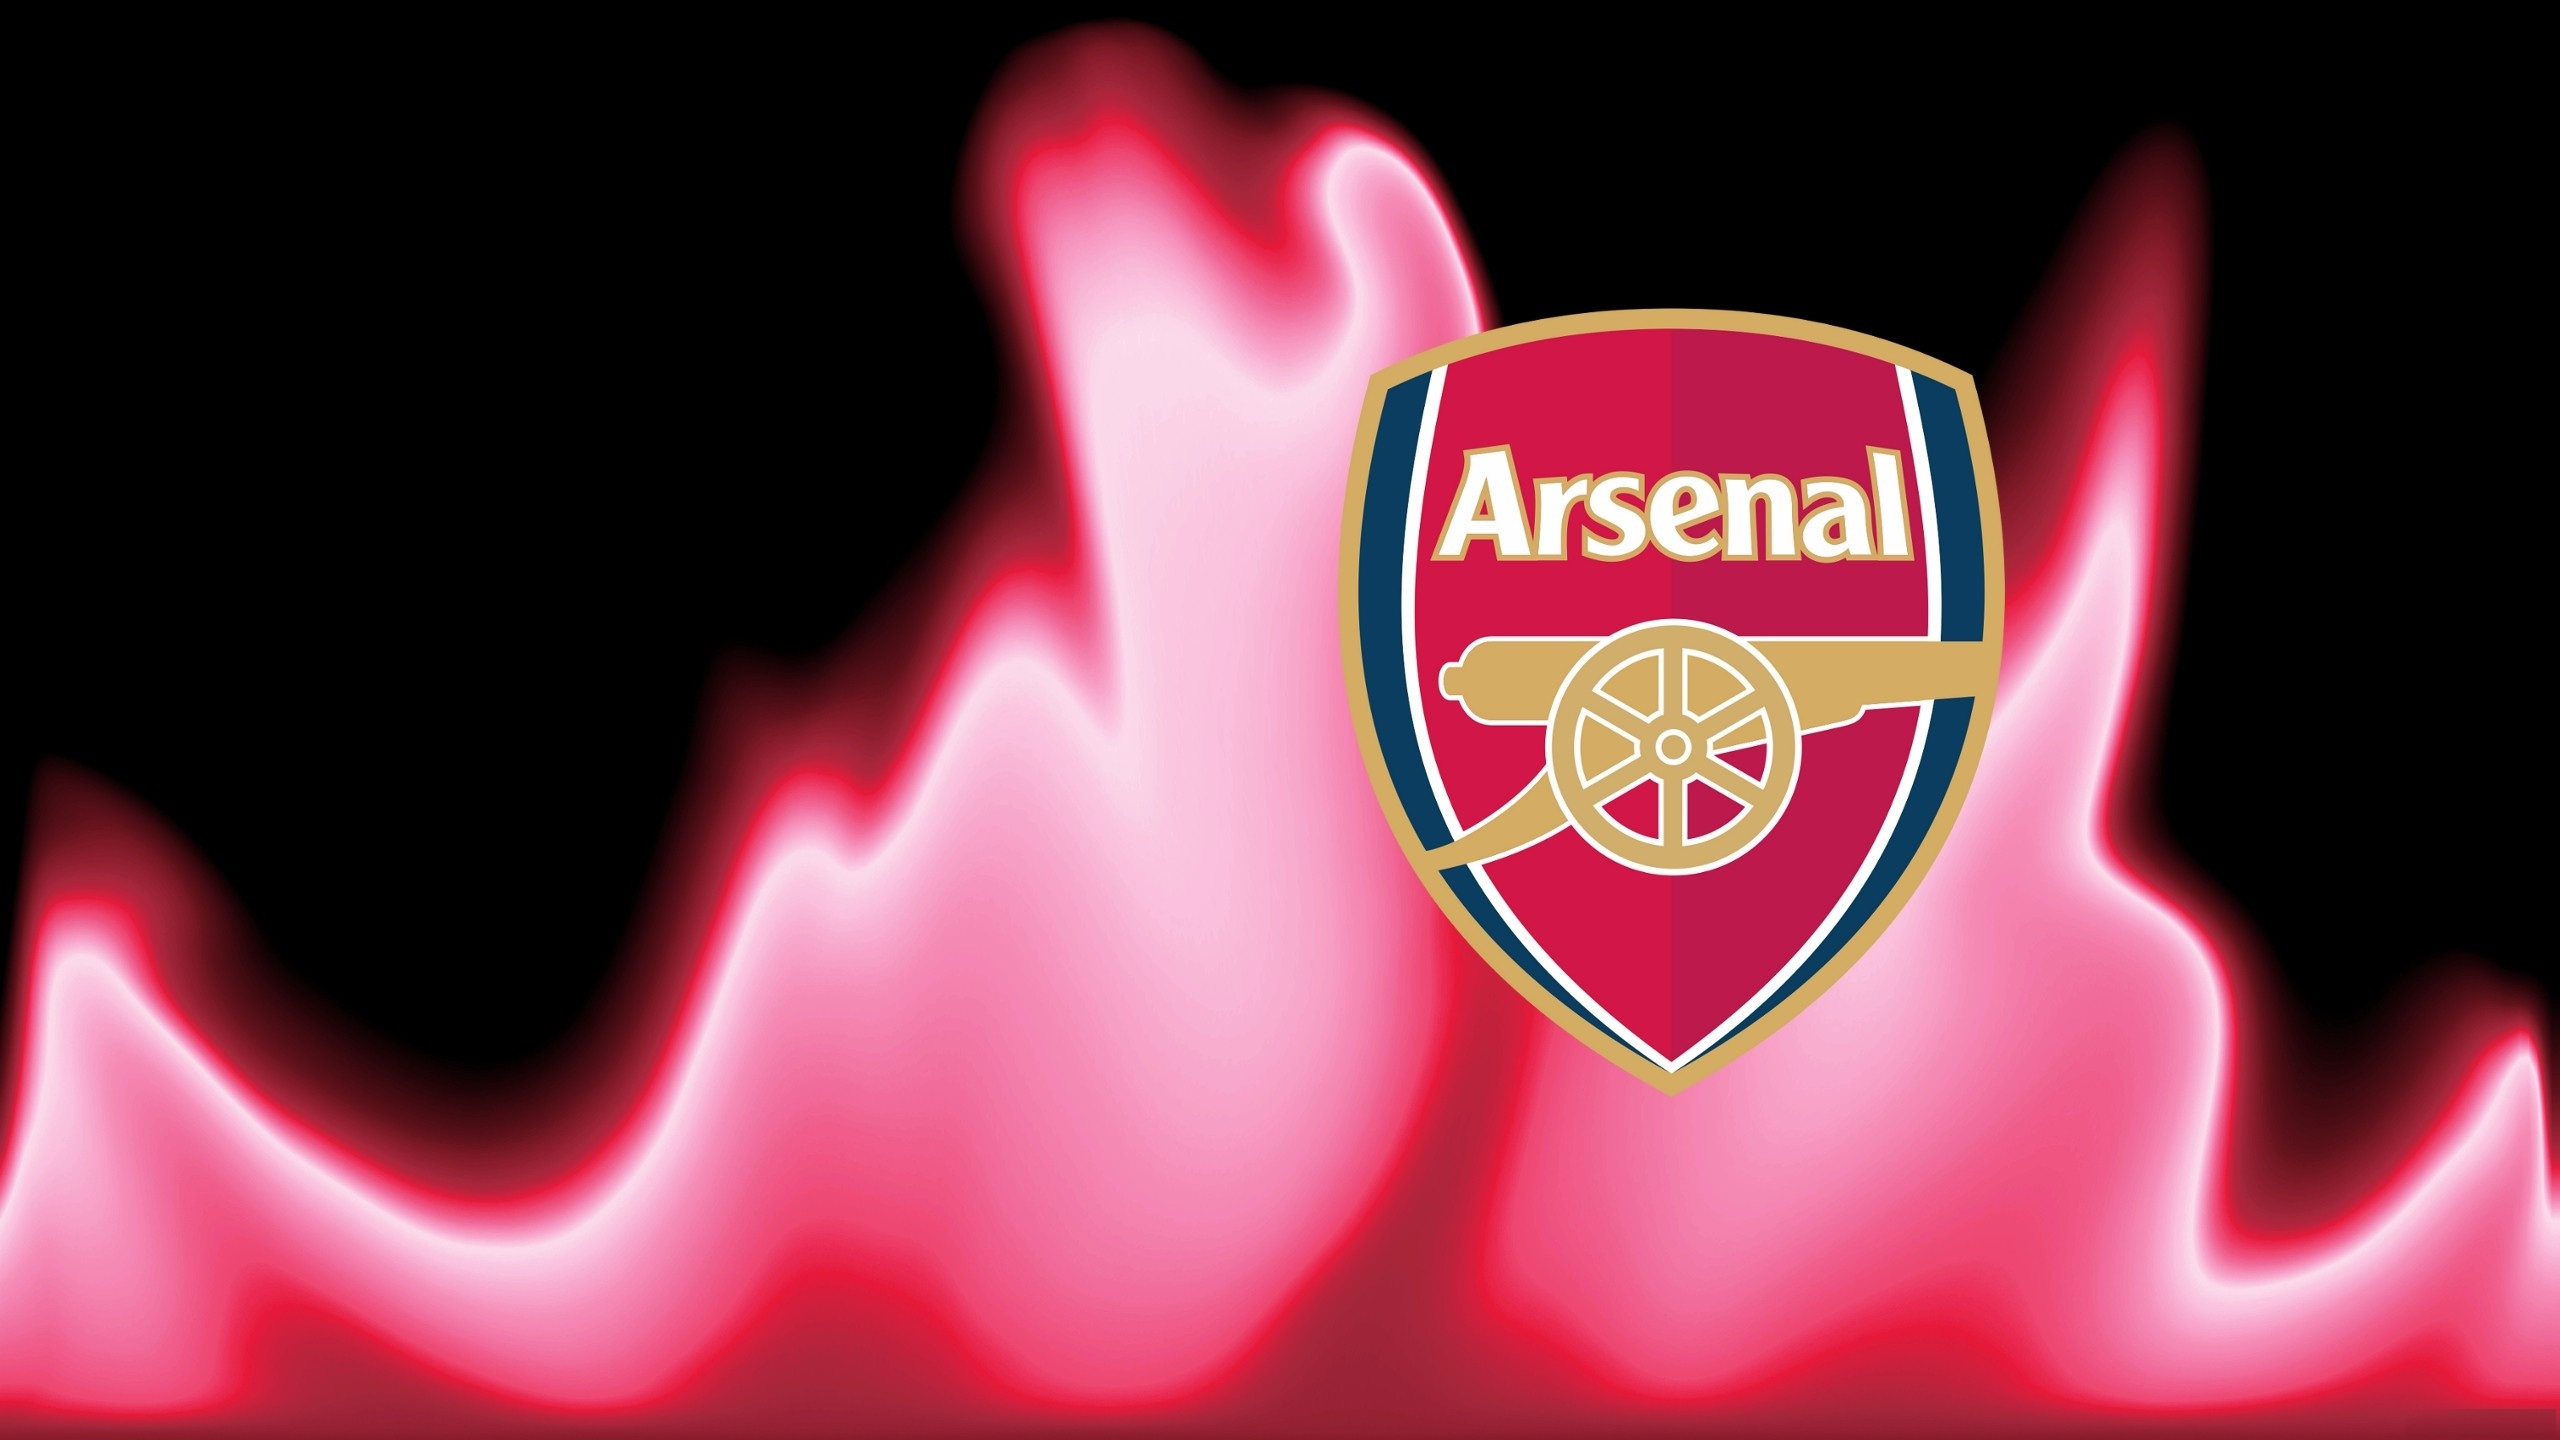 Cute Live Wallpaper For Mobile Free Download Arsenal Hd Wallpapers